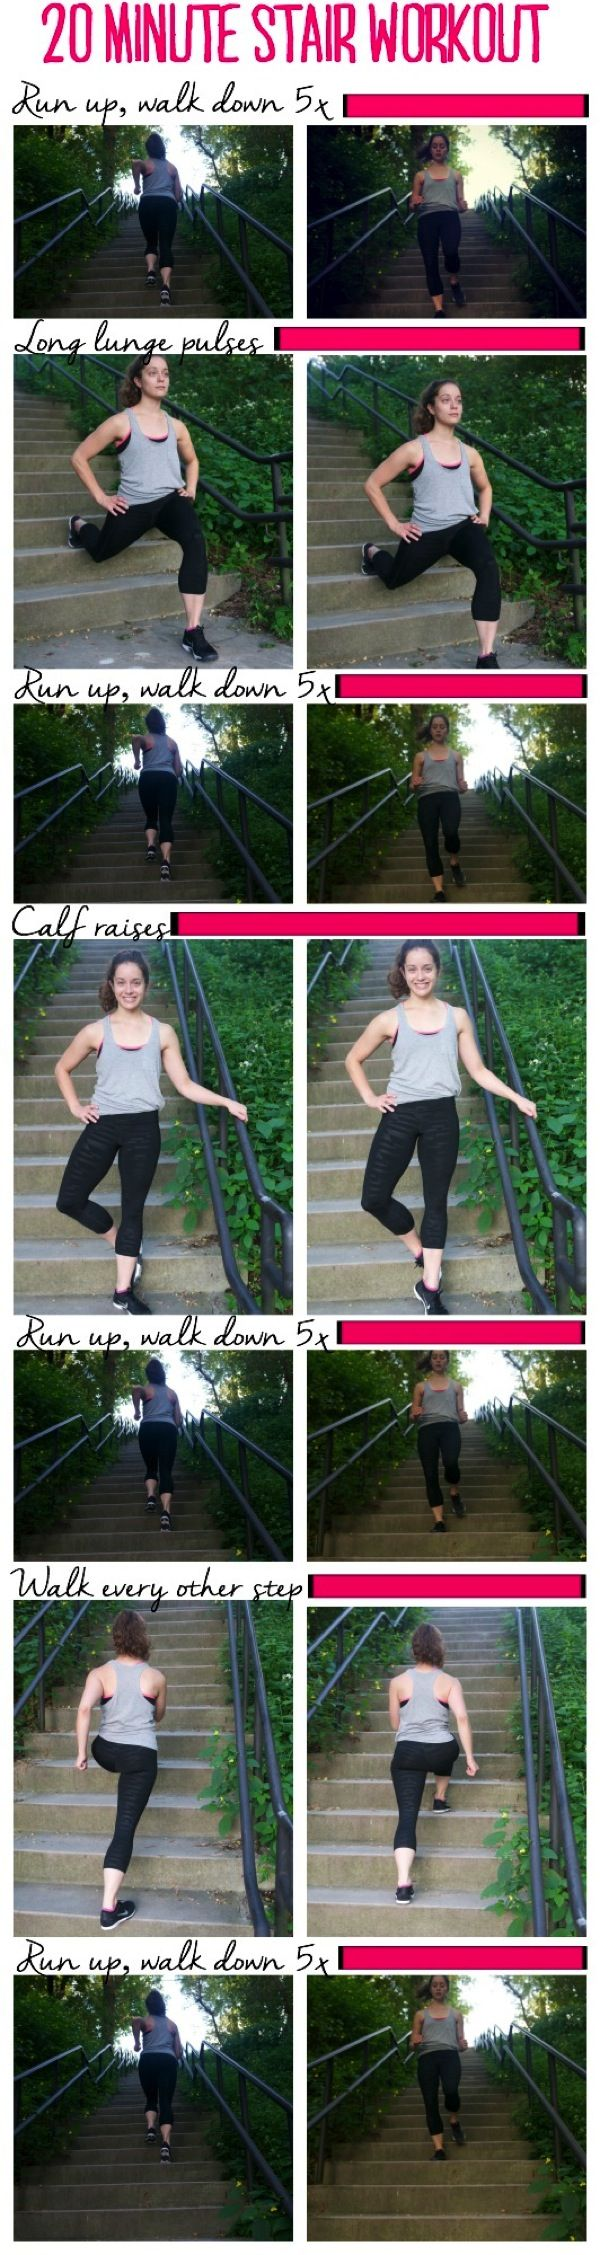 20 Minute Stair Workout-works your thighs, glutes and calves AND is an awesome cardio workout